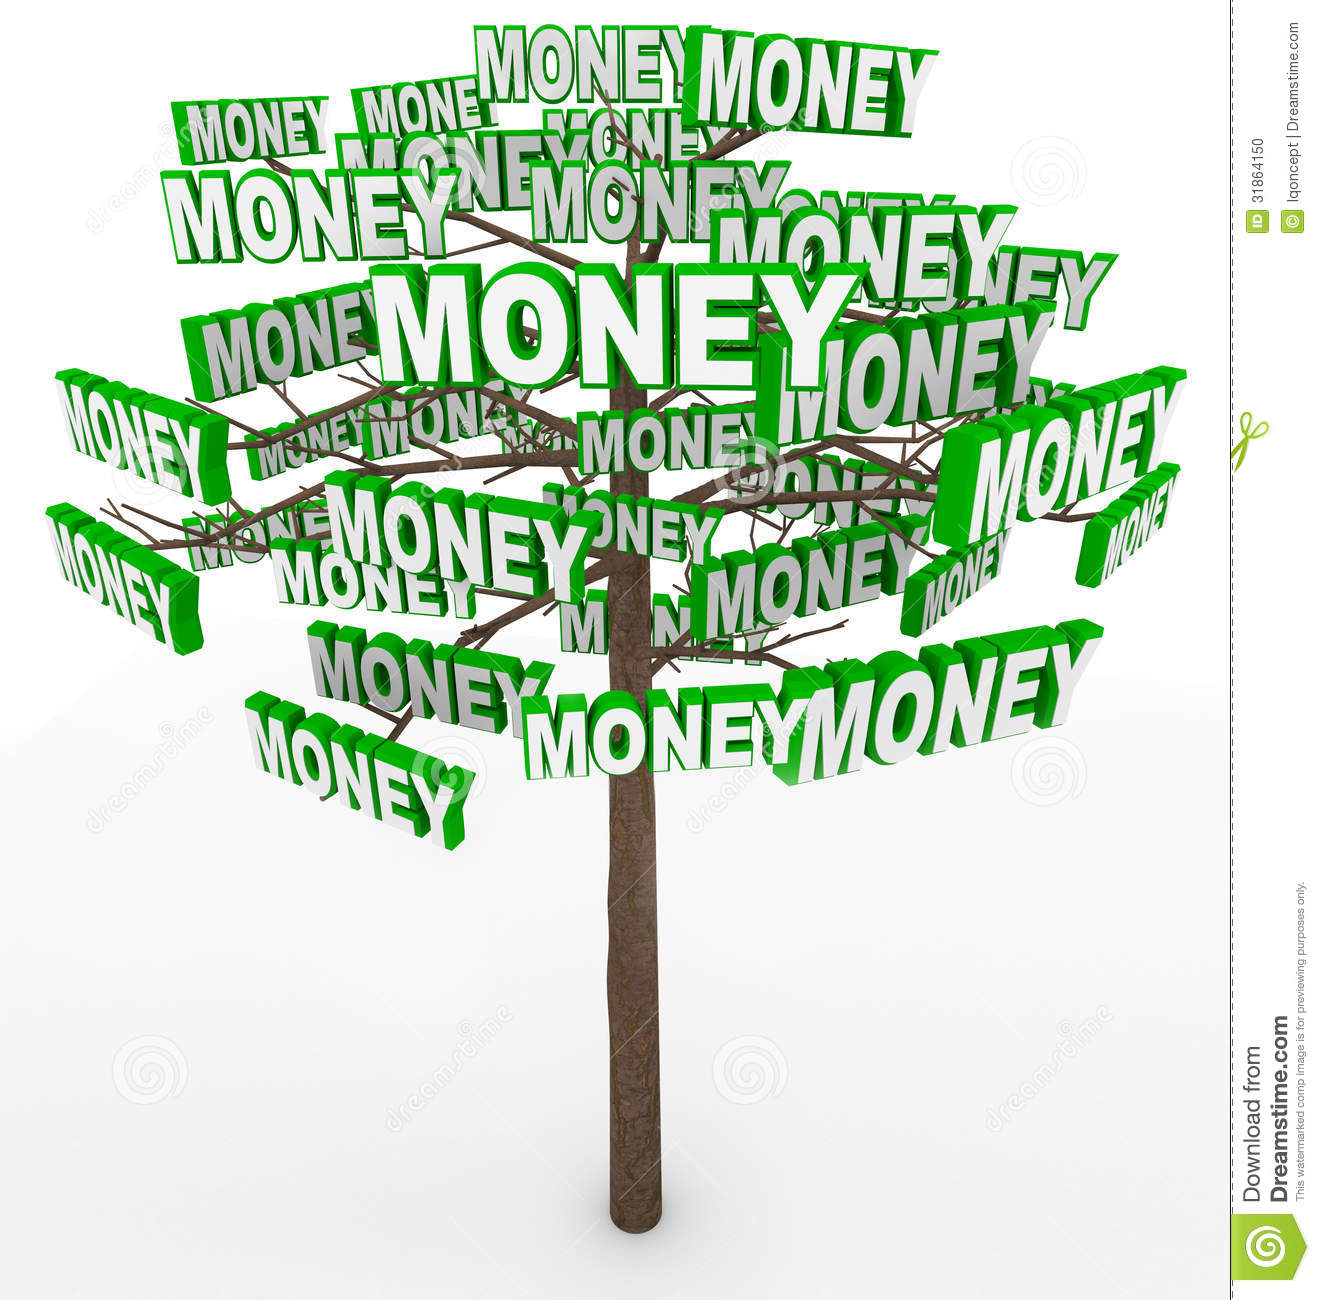 Get rich by picking money off tree branches despite the saying Money ...